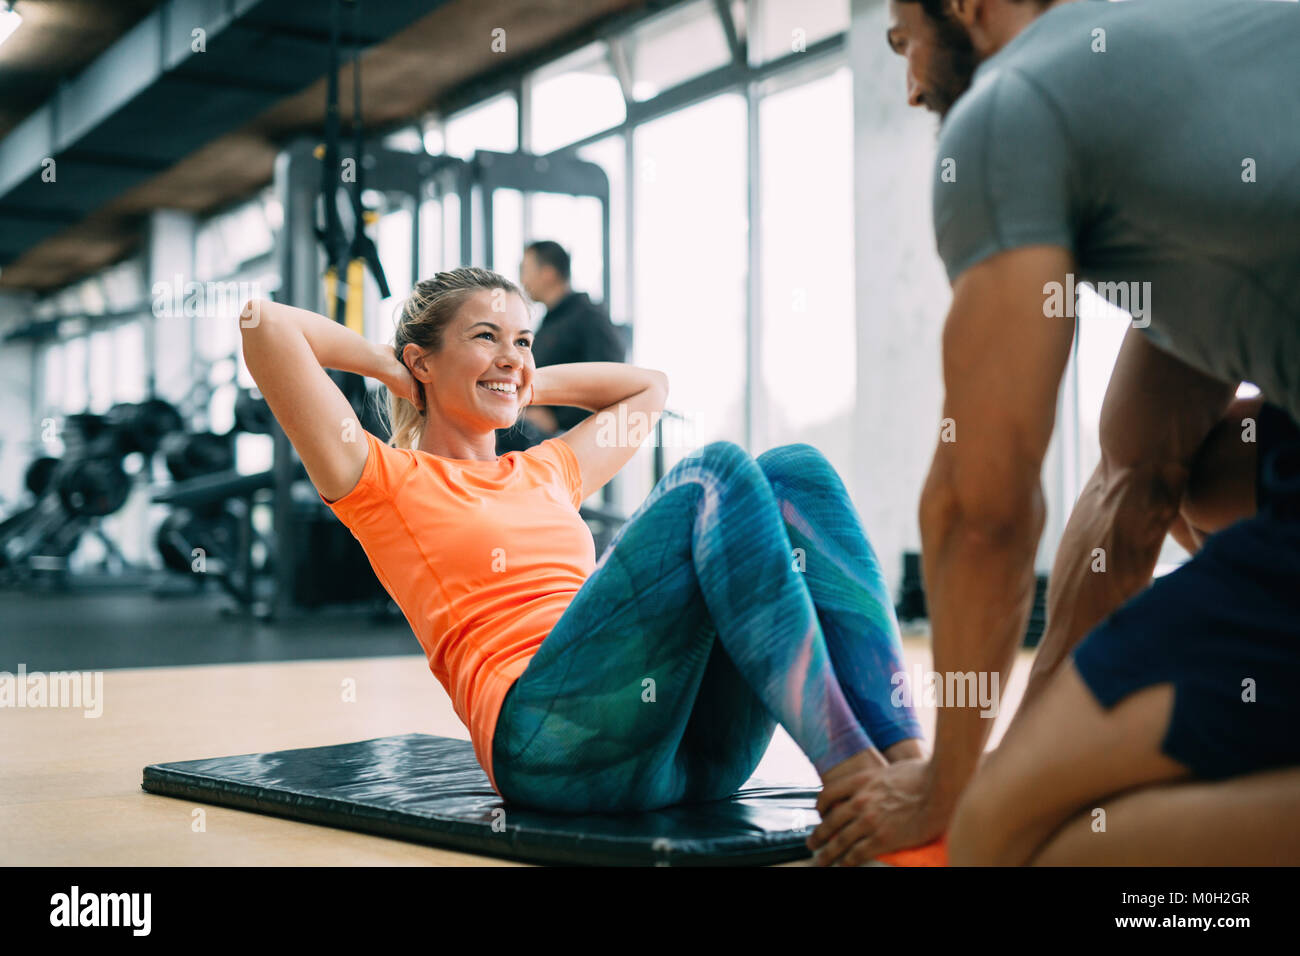 Personal trainer assisting woman perdre du poids Photo Stock